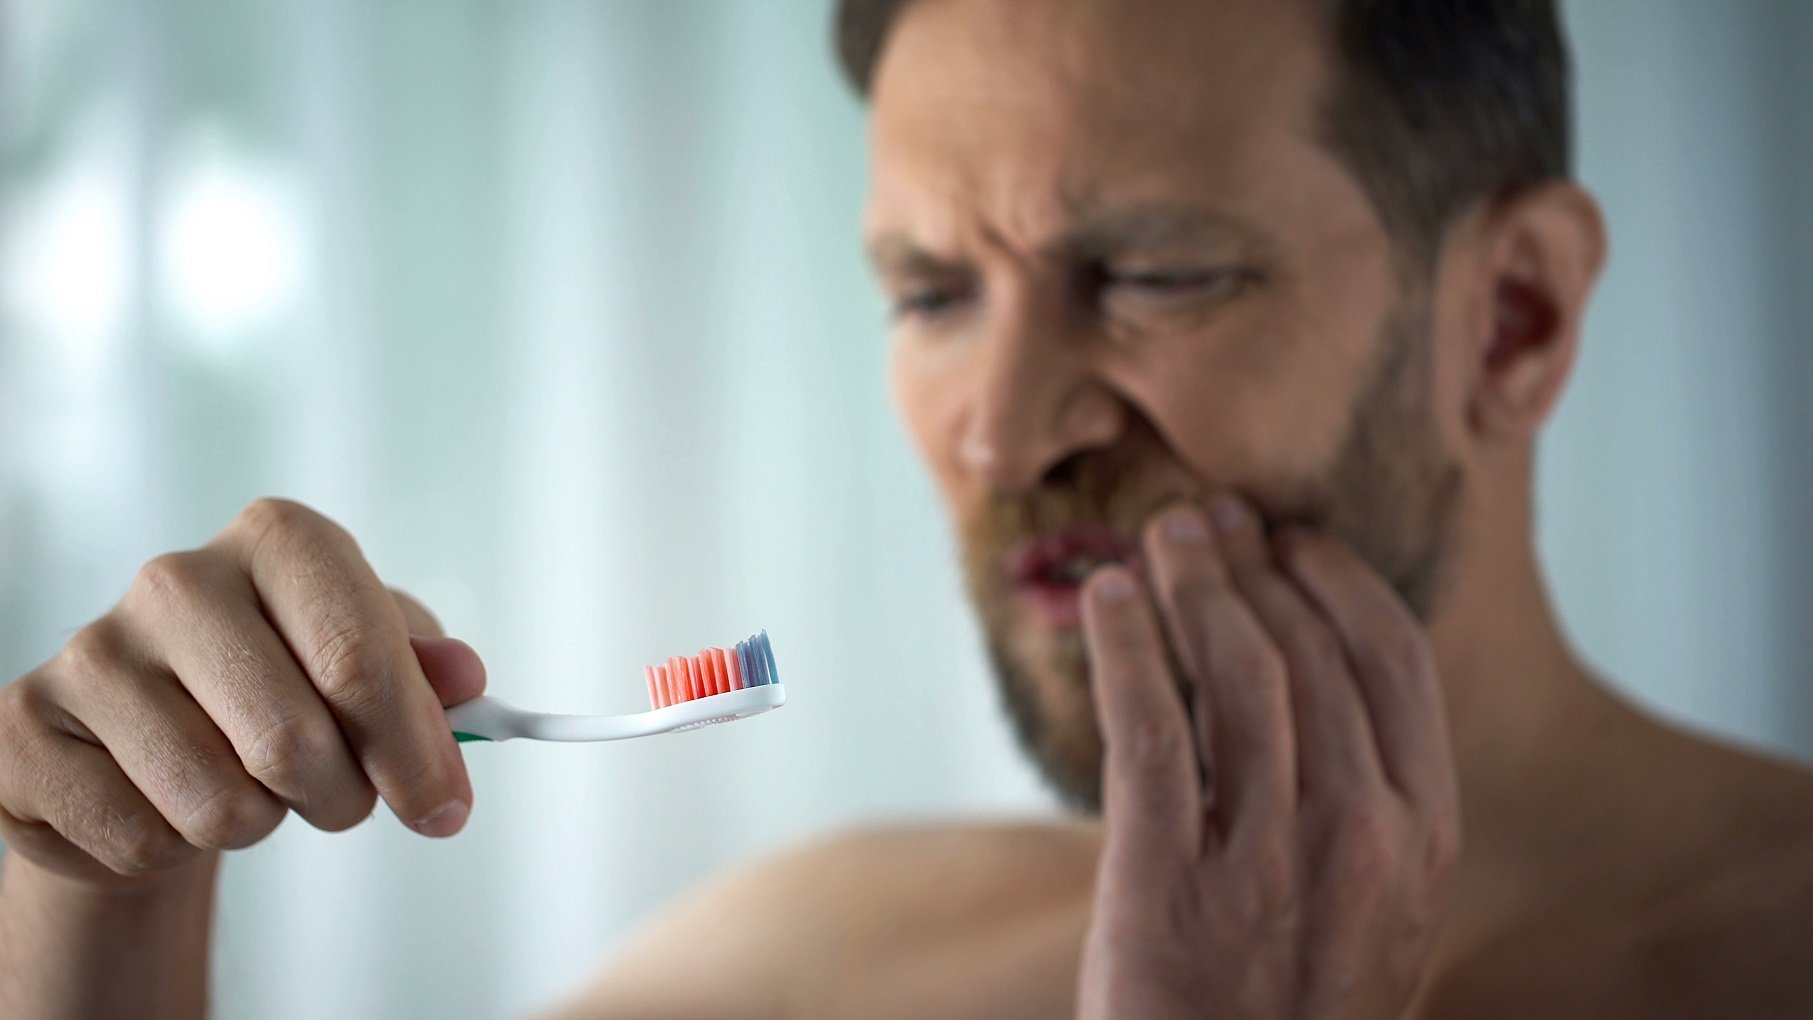 tooth decay symptoms True Dental man experiencing mouth soreness while looking at toothbrush